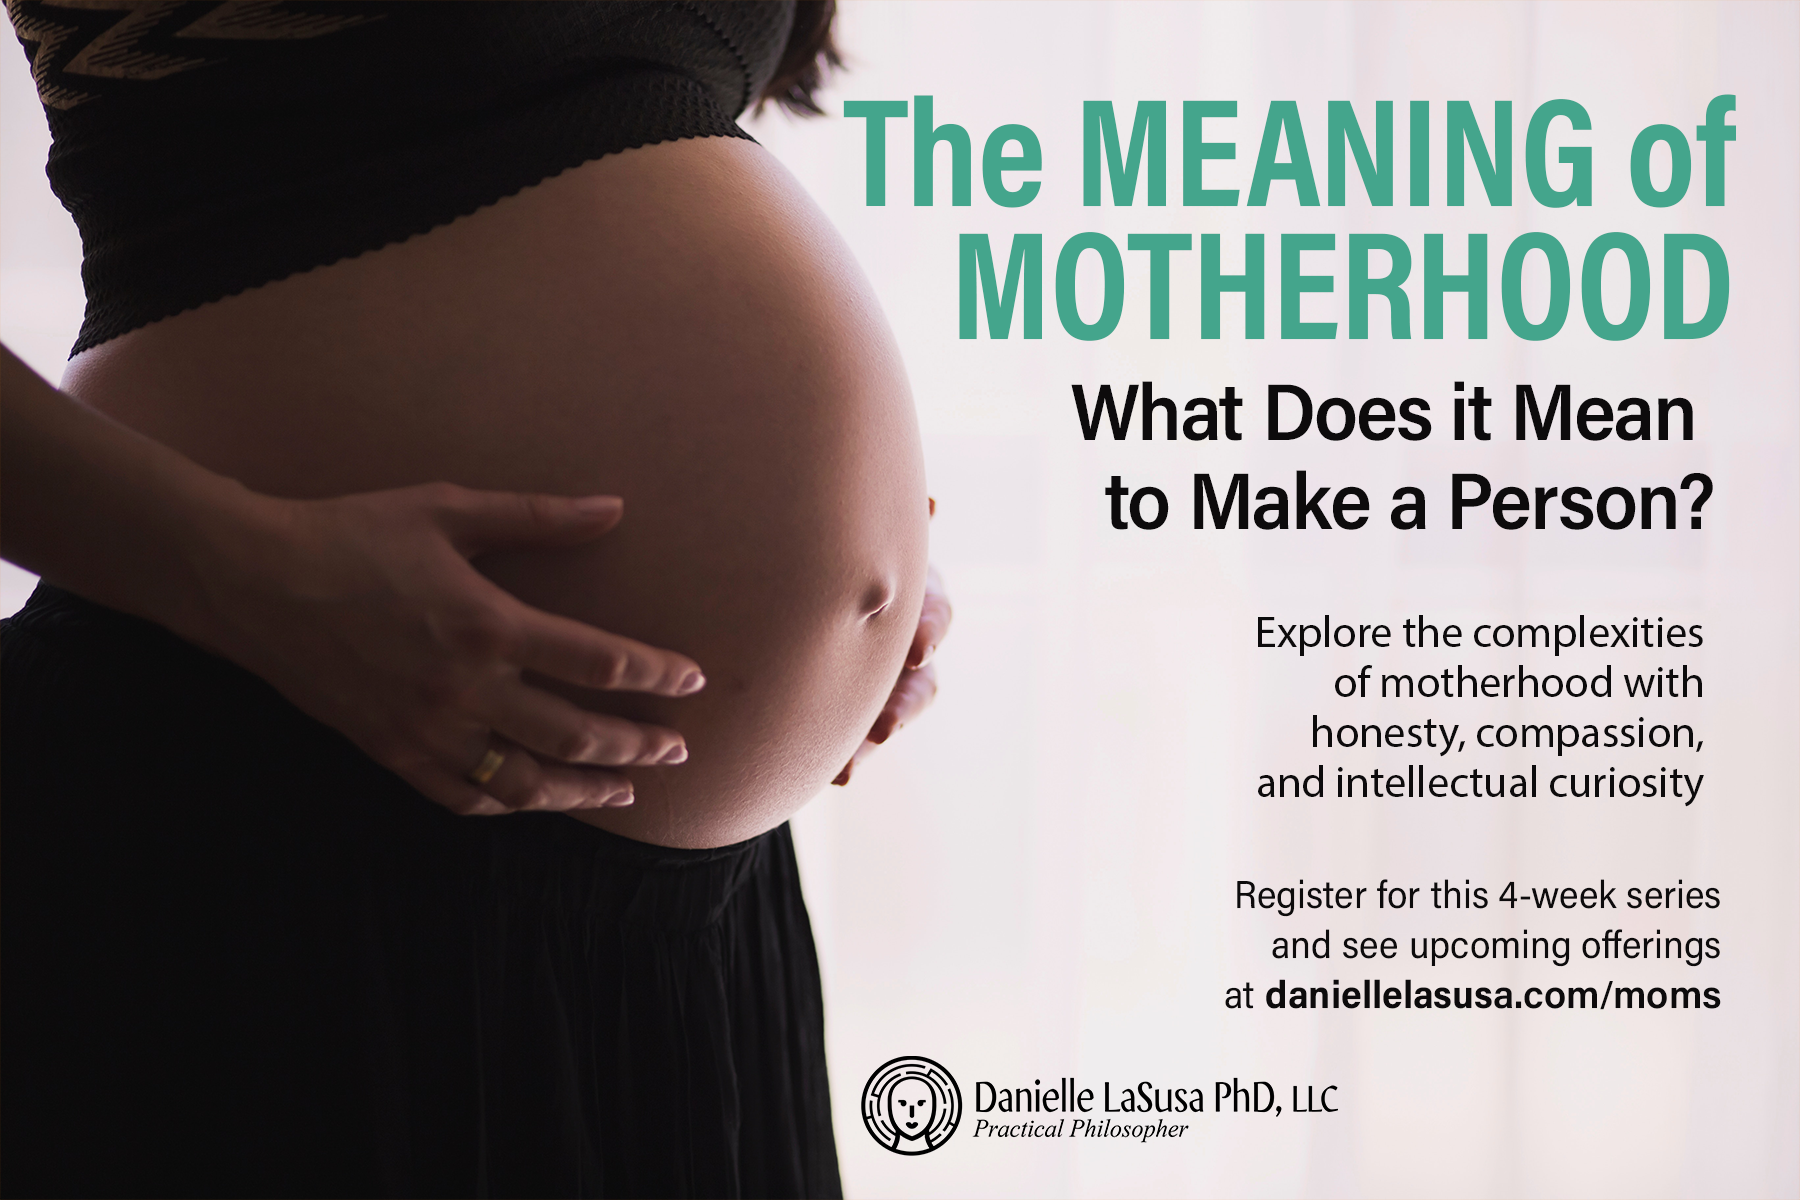 Meaning_of_Motherhood_Flyer_Front_4x6_v04.png